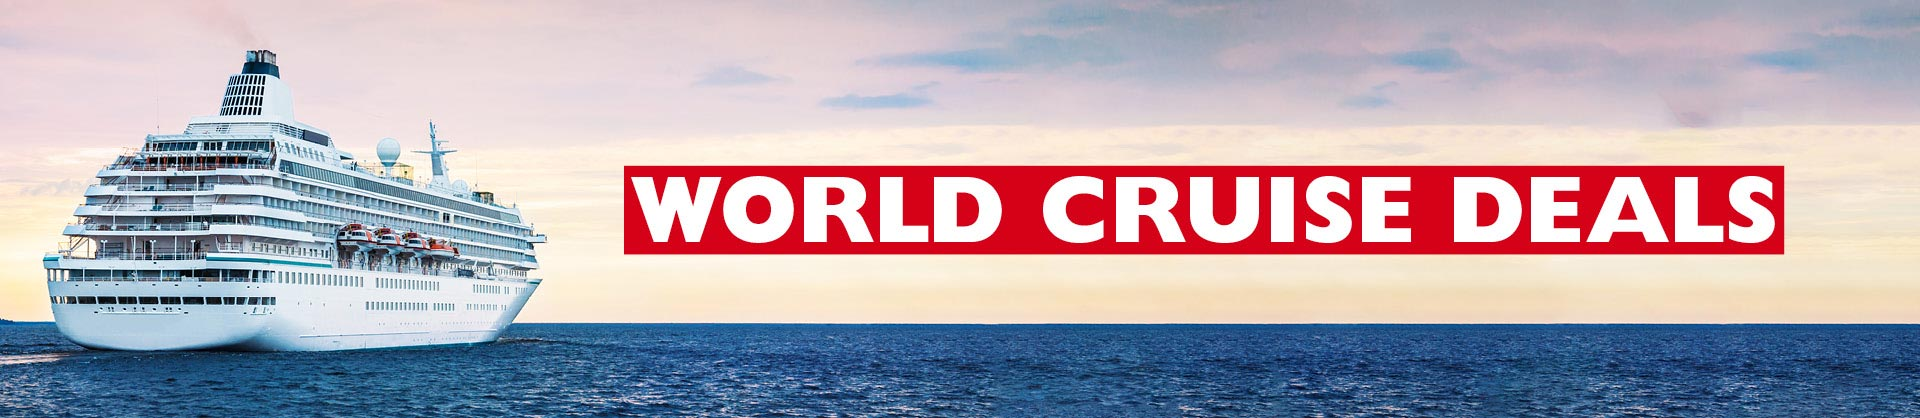 Round The World Cruises Set Sail With Flight Centre Deals